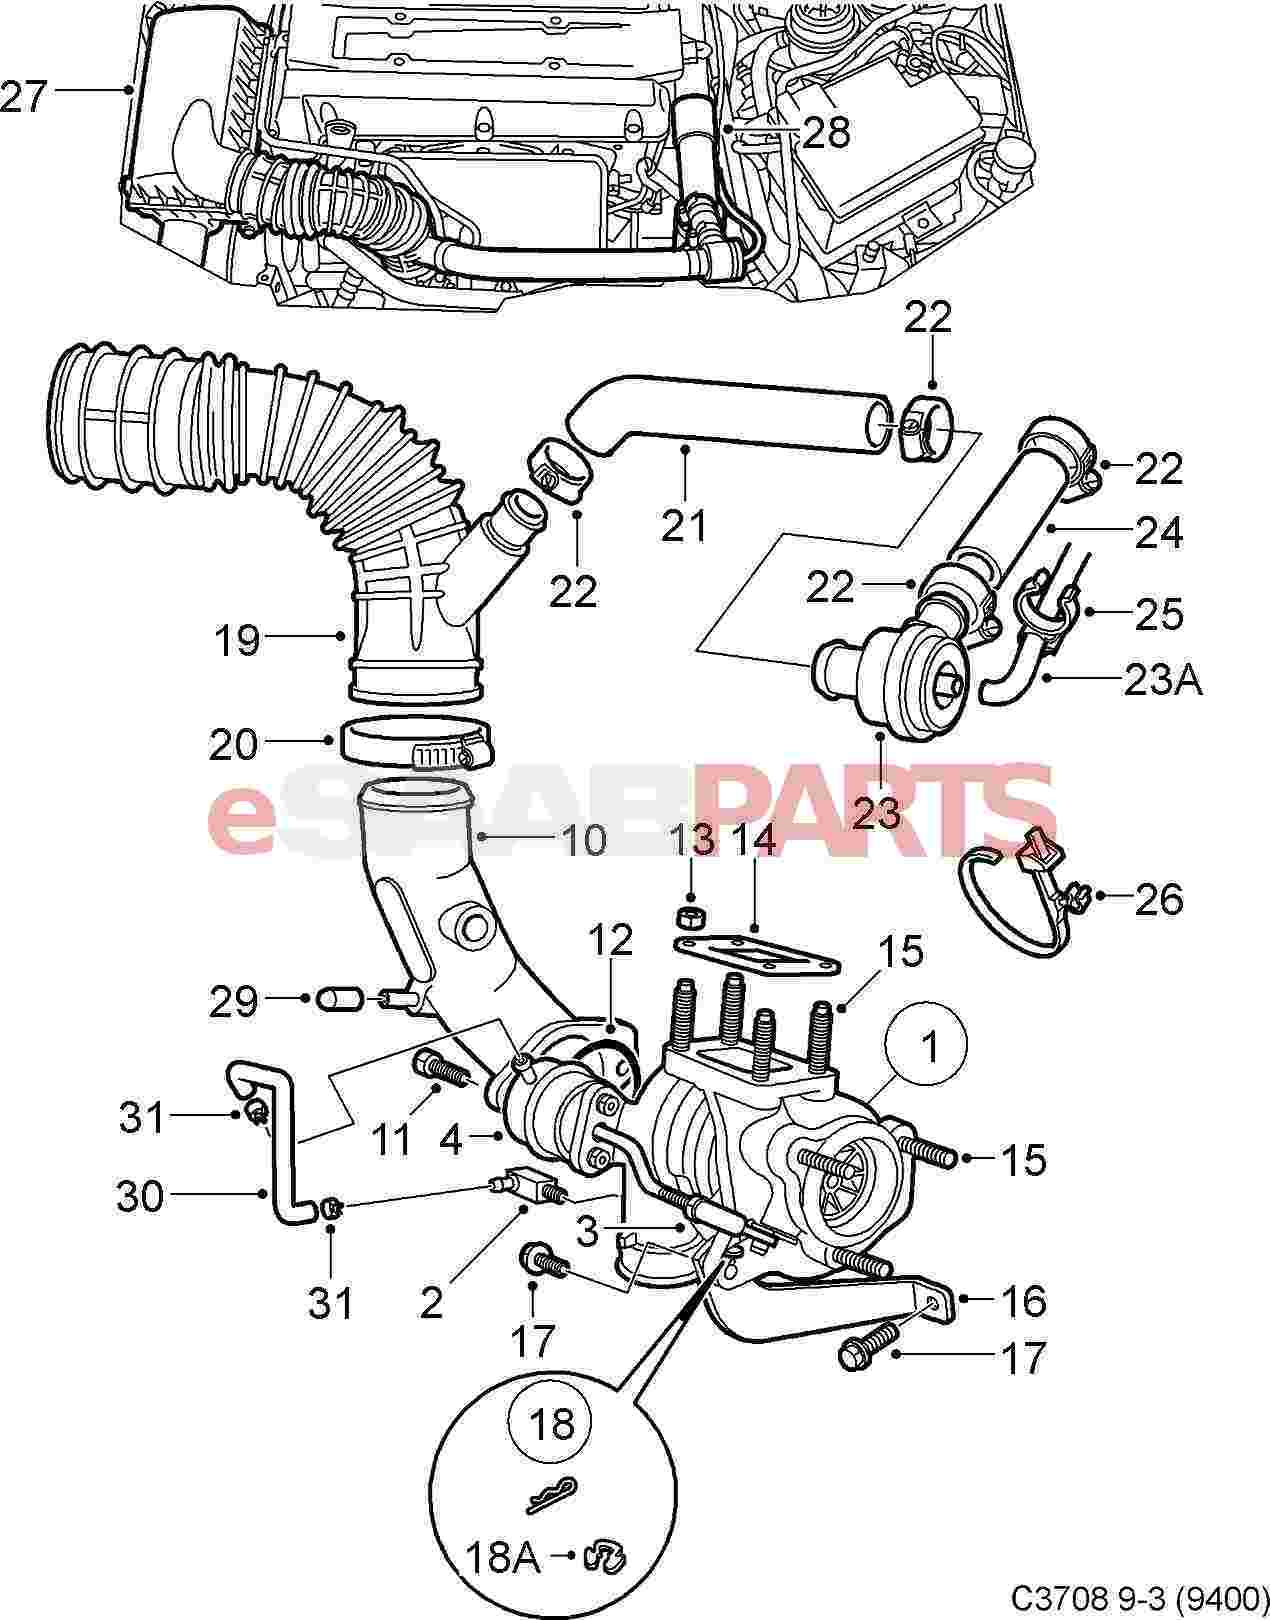 saab 900 vacuum diagram free wiring diagram images